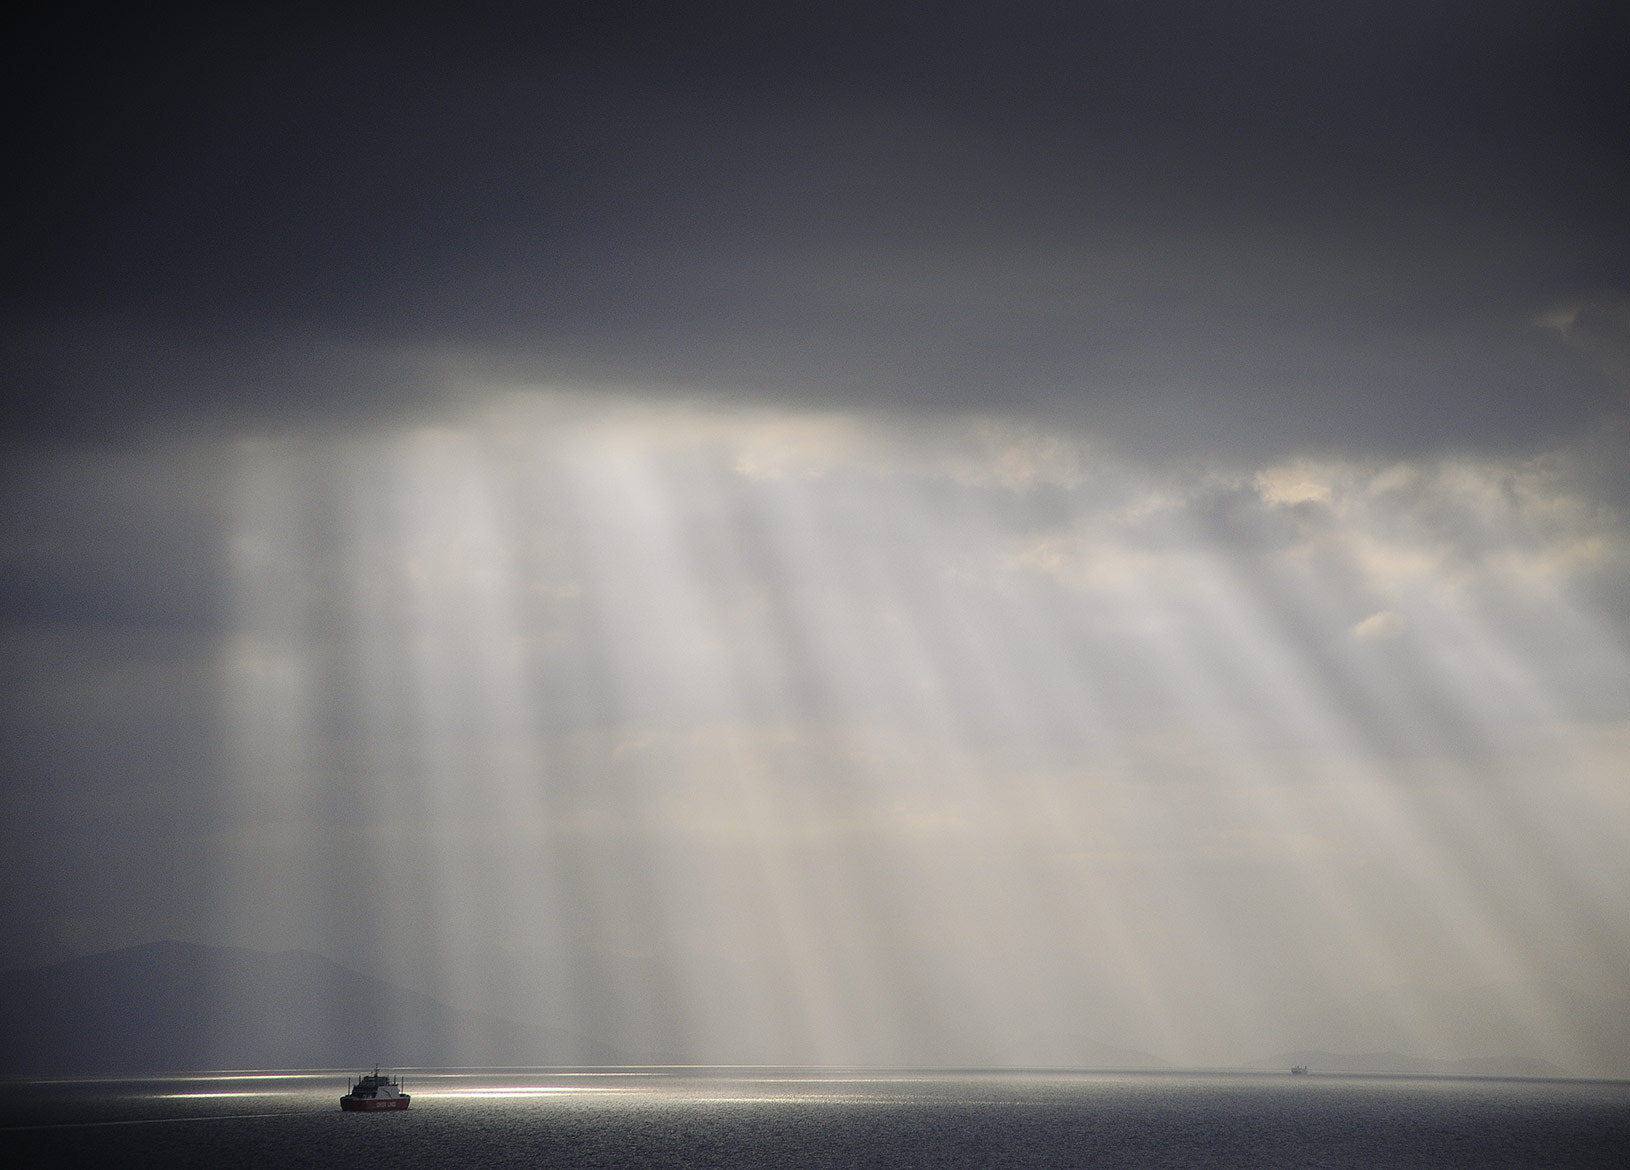 Photograph Angels light by alex dawson on 500px